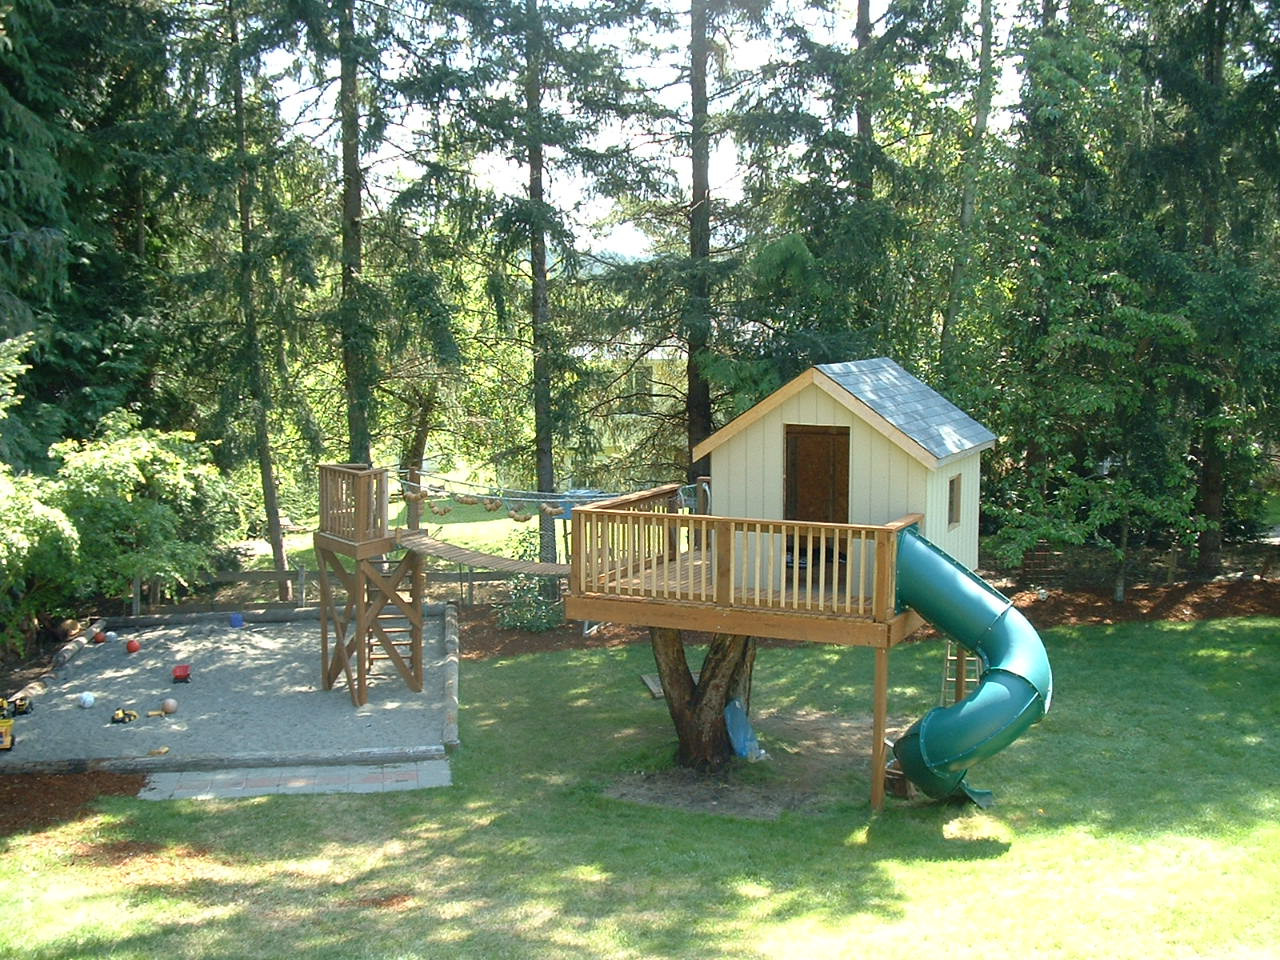 Best ideas about DIY Treehouse Kits . Save or Pin Choose Best Tree House Kits BEST HOUSE DESIGN Now.